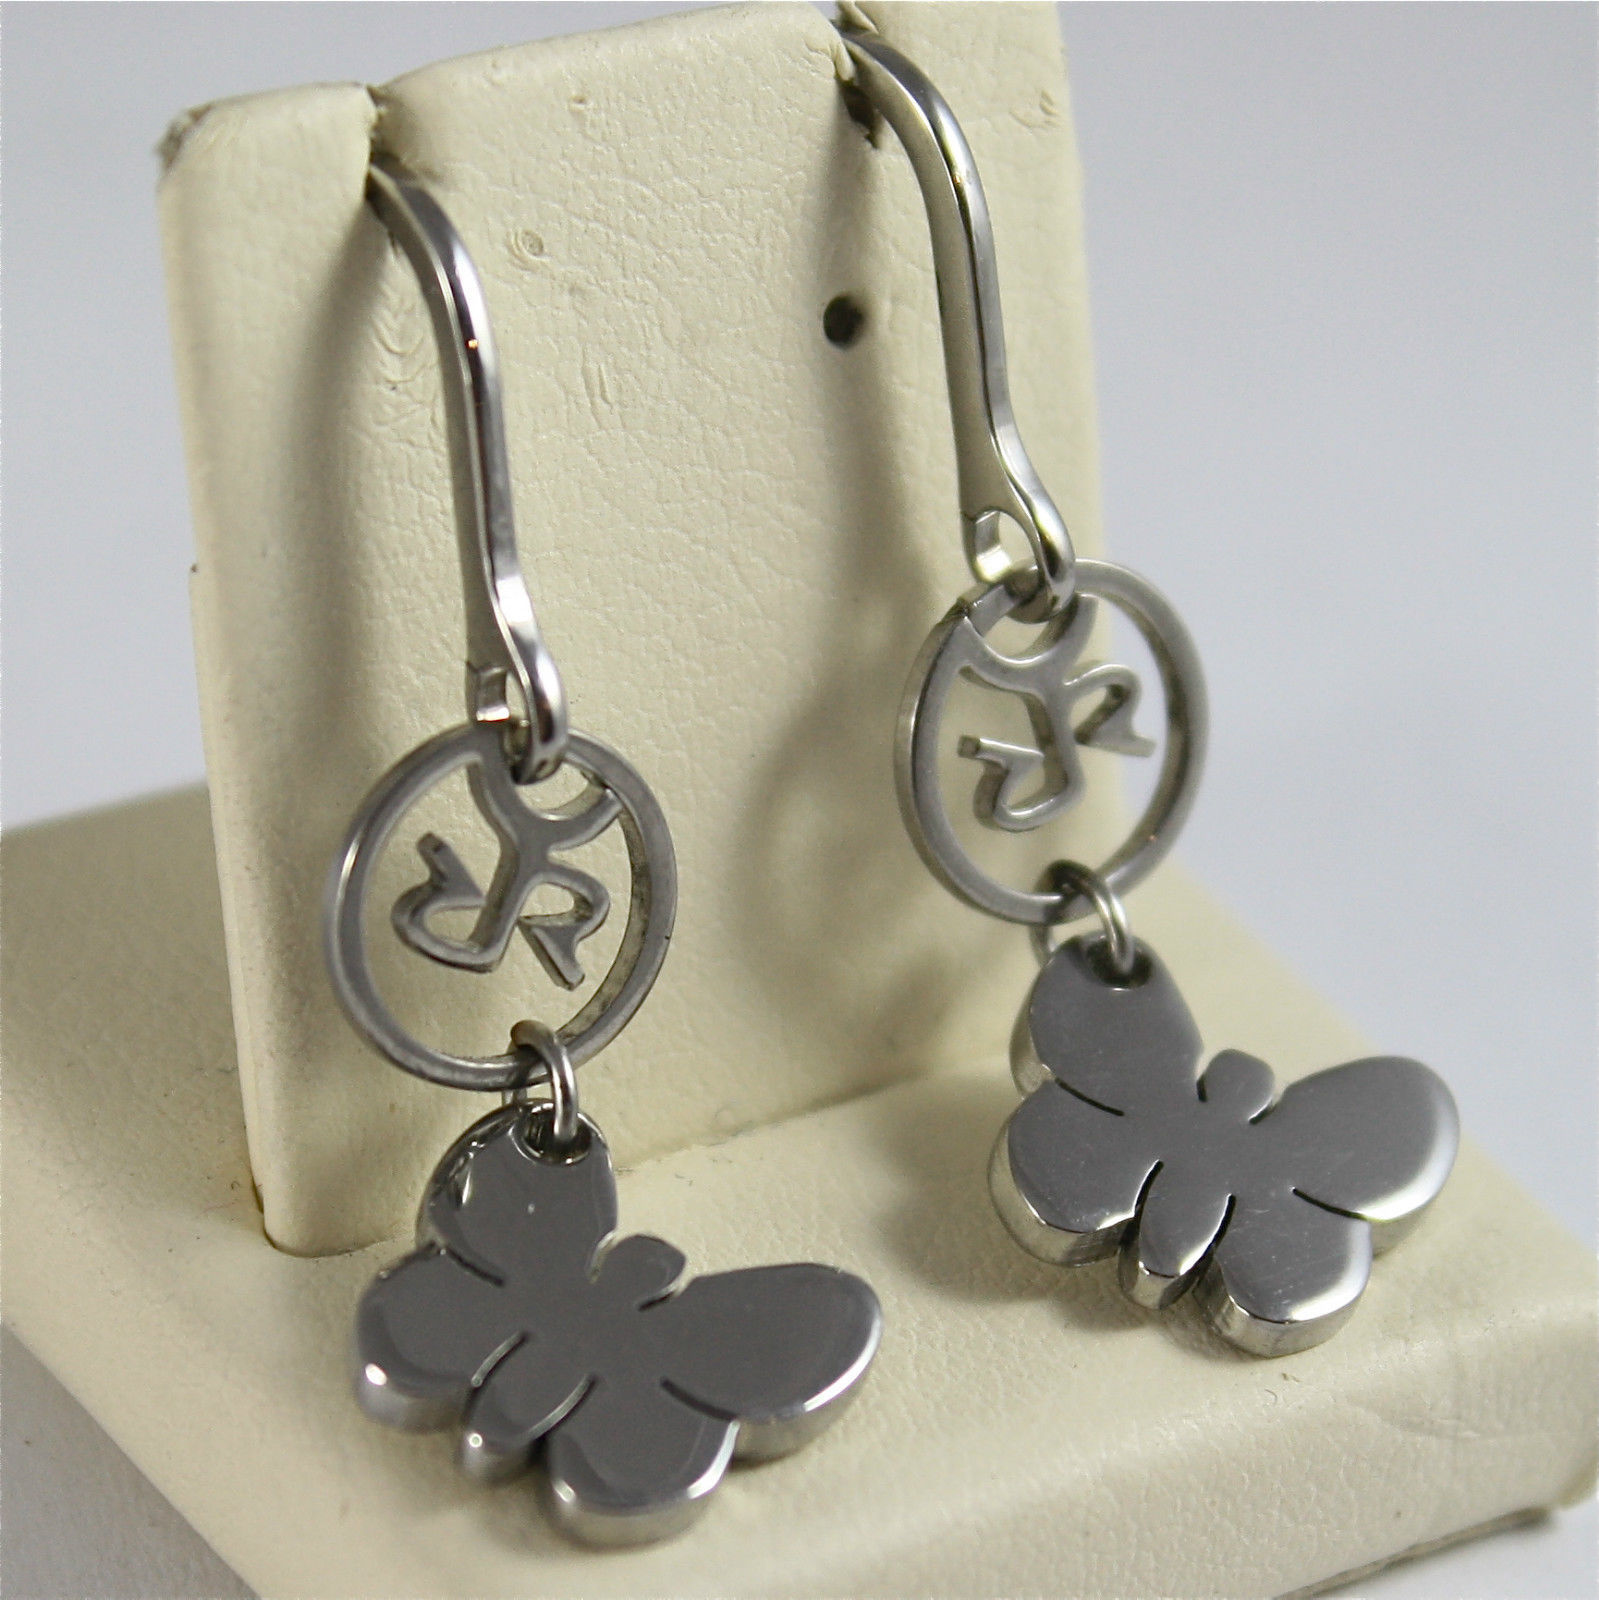 RHODIUM-PLATED BRONZE EARRINGS WITH PENDANT BY REBECCA MADE IN ITALY